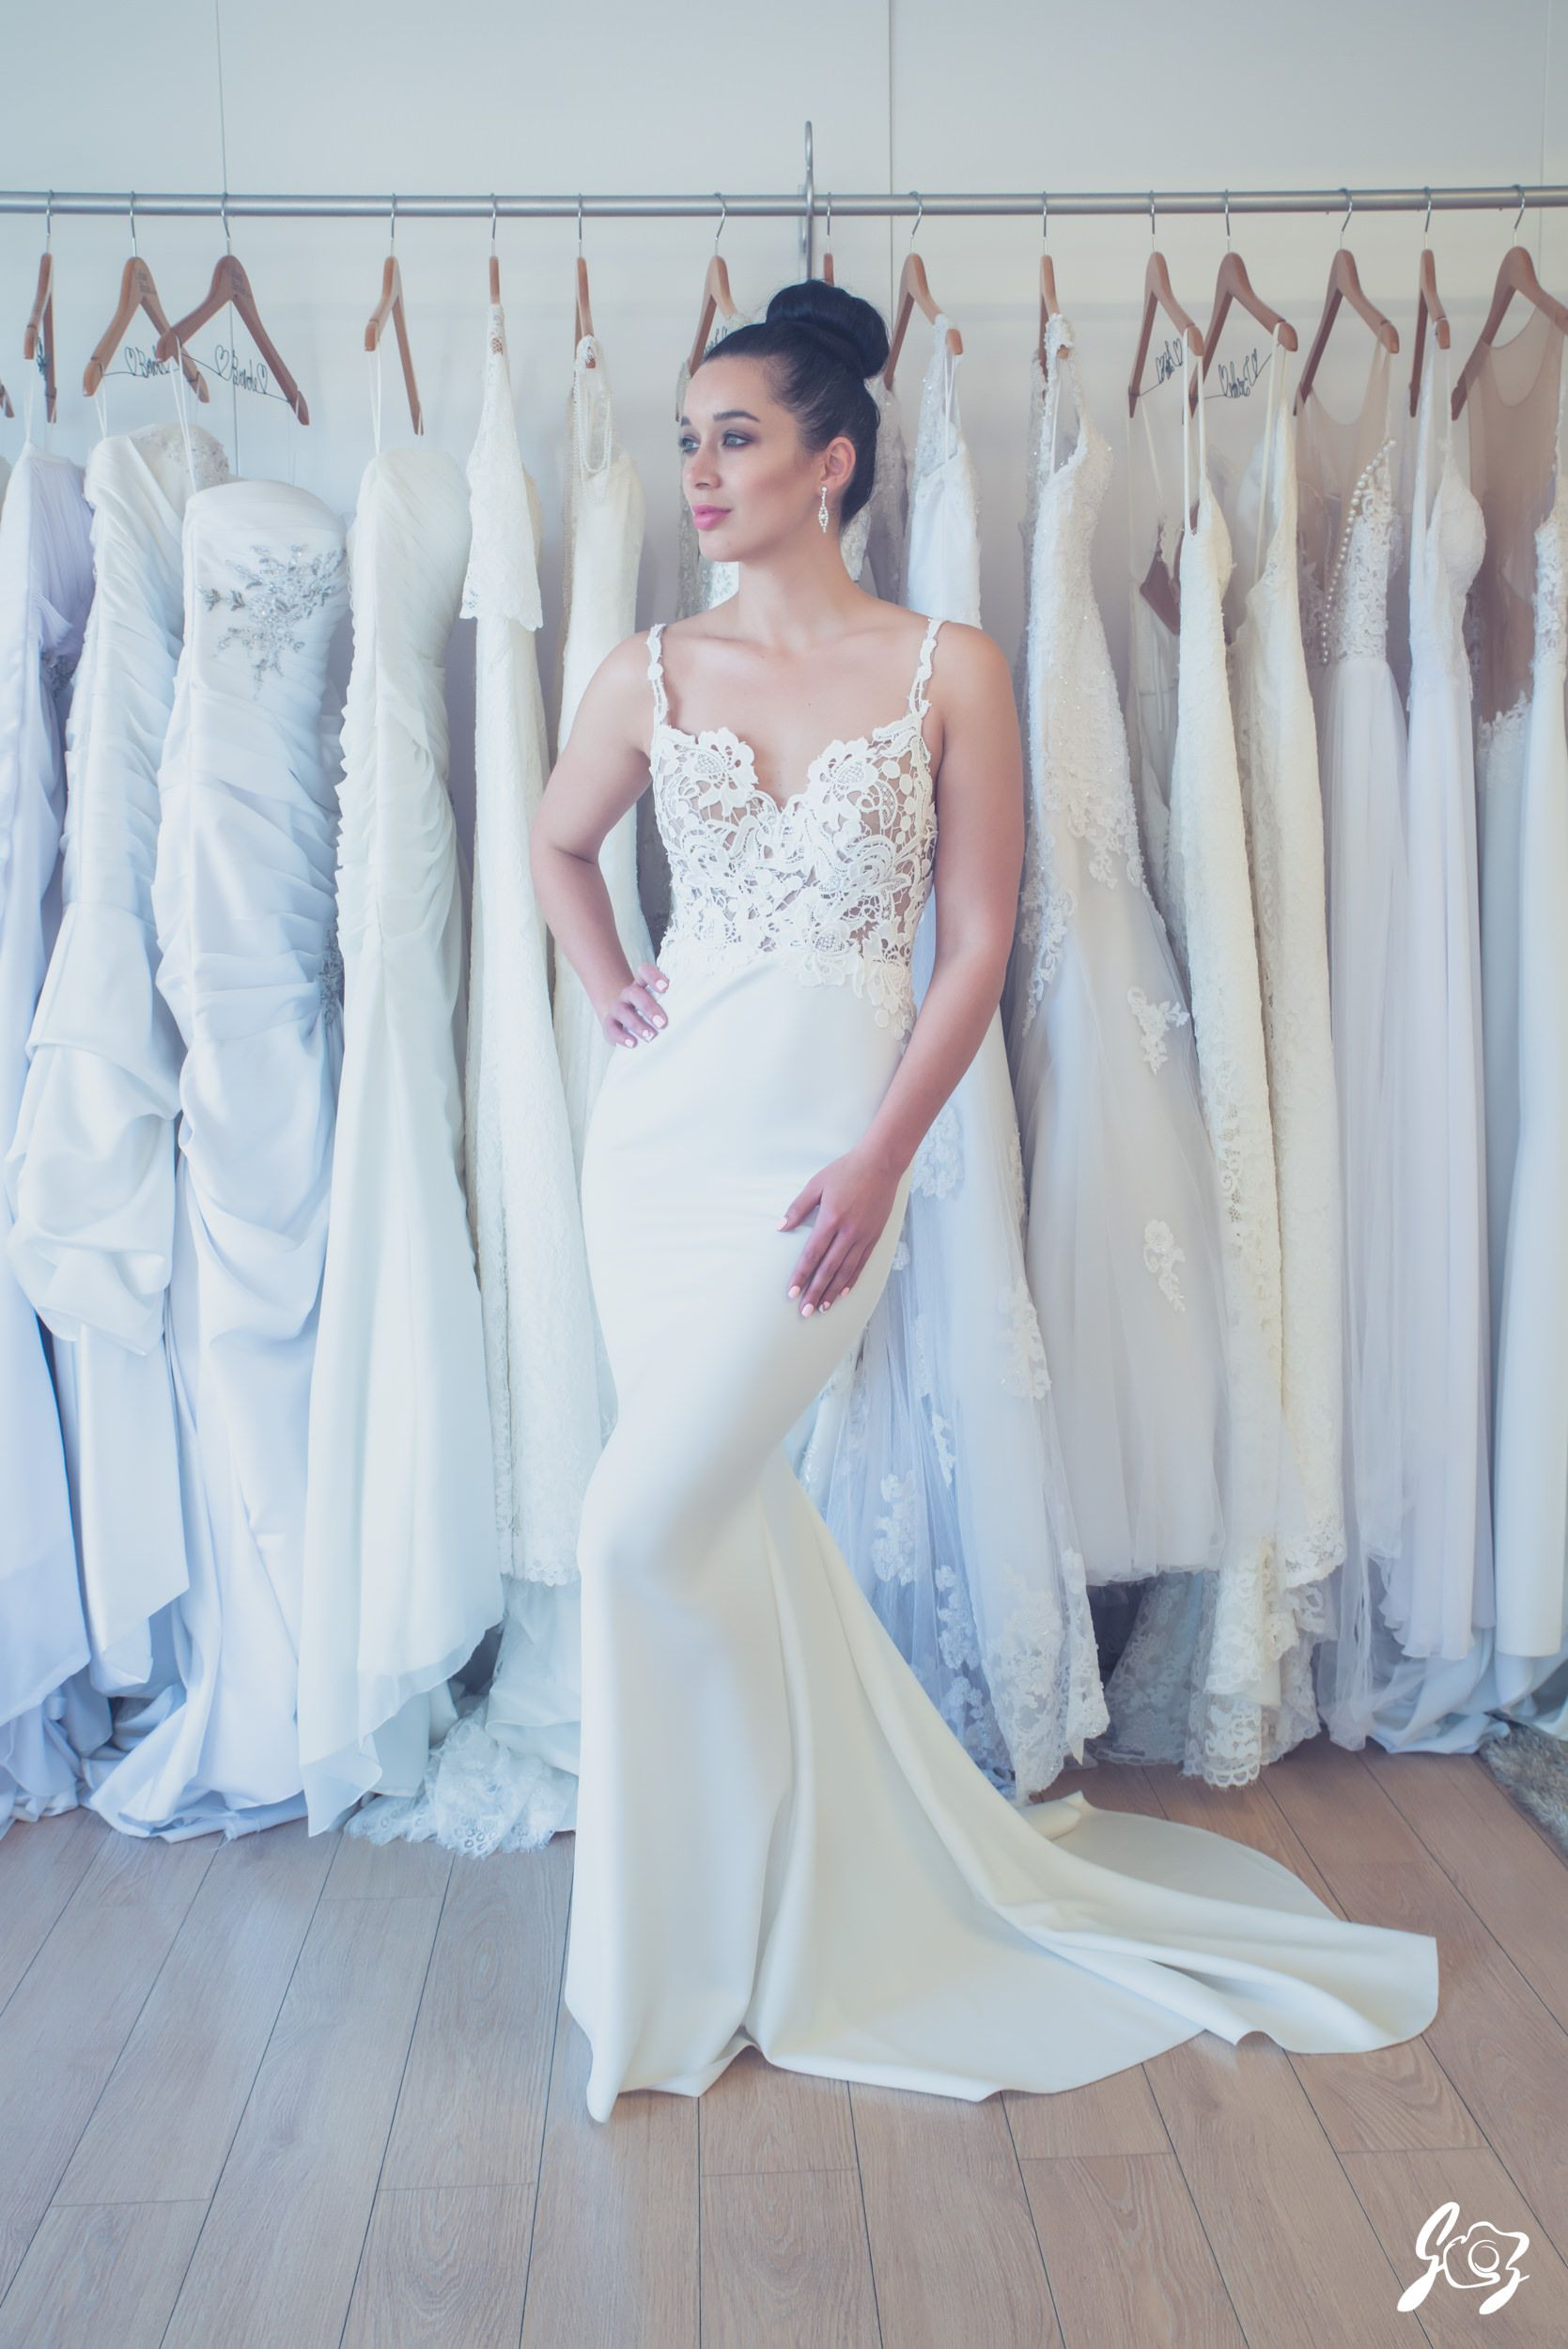 Pin by Urban Bride on Photo shoot at Urban Bride | Pinterest ...